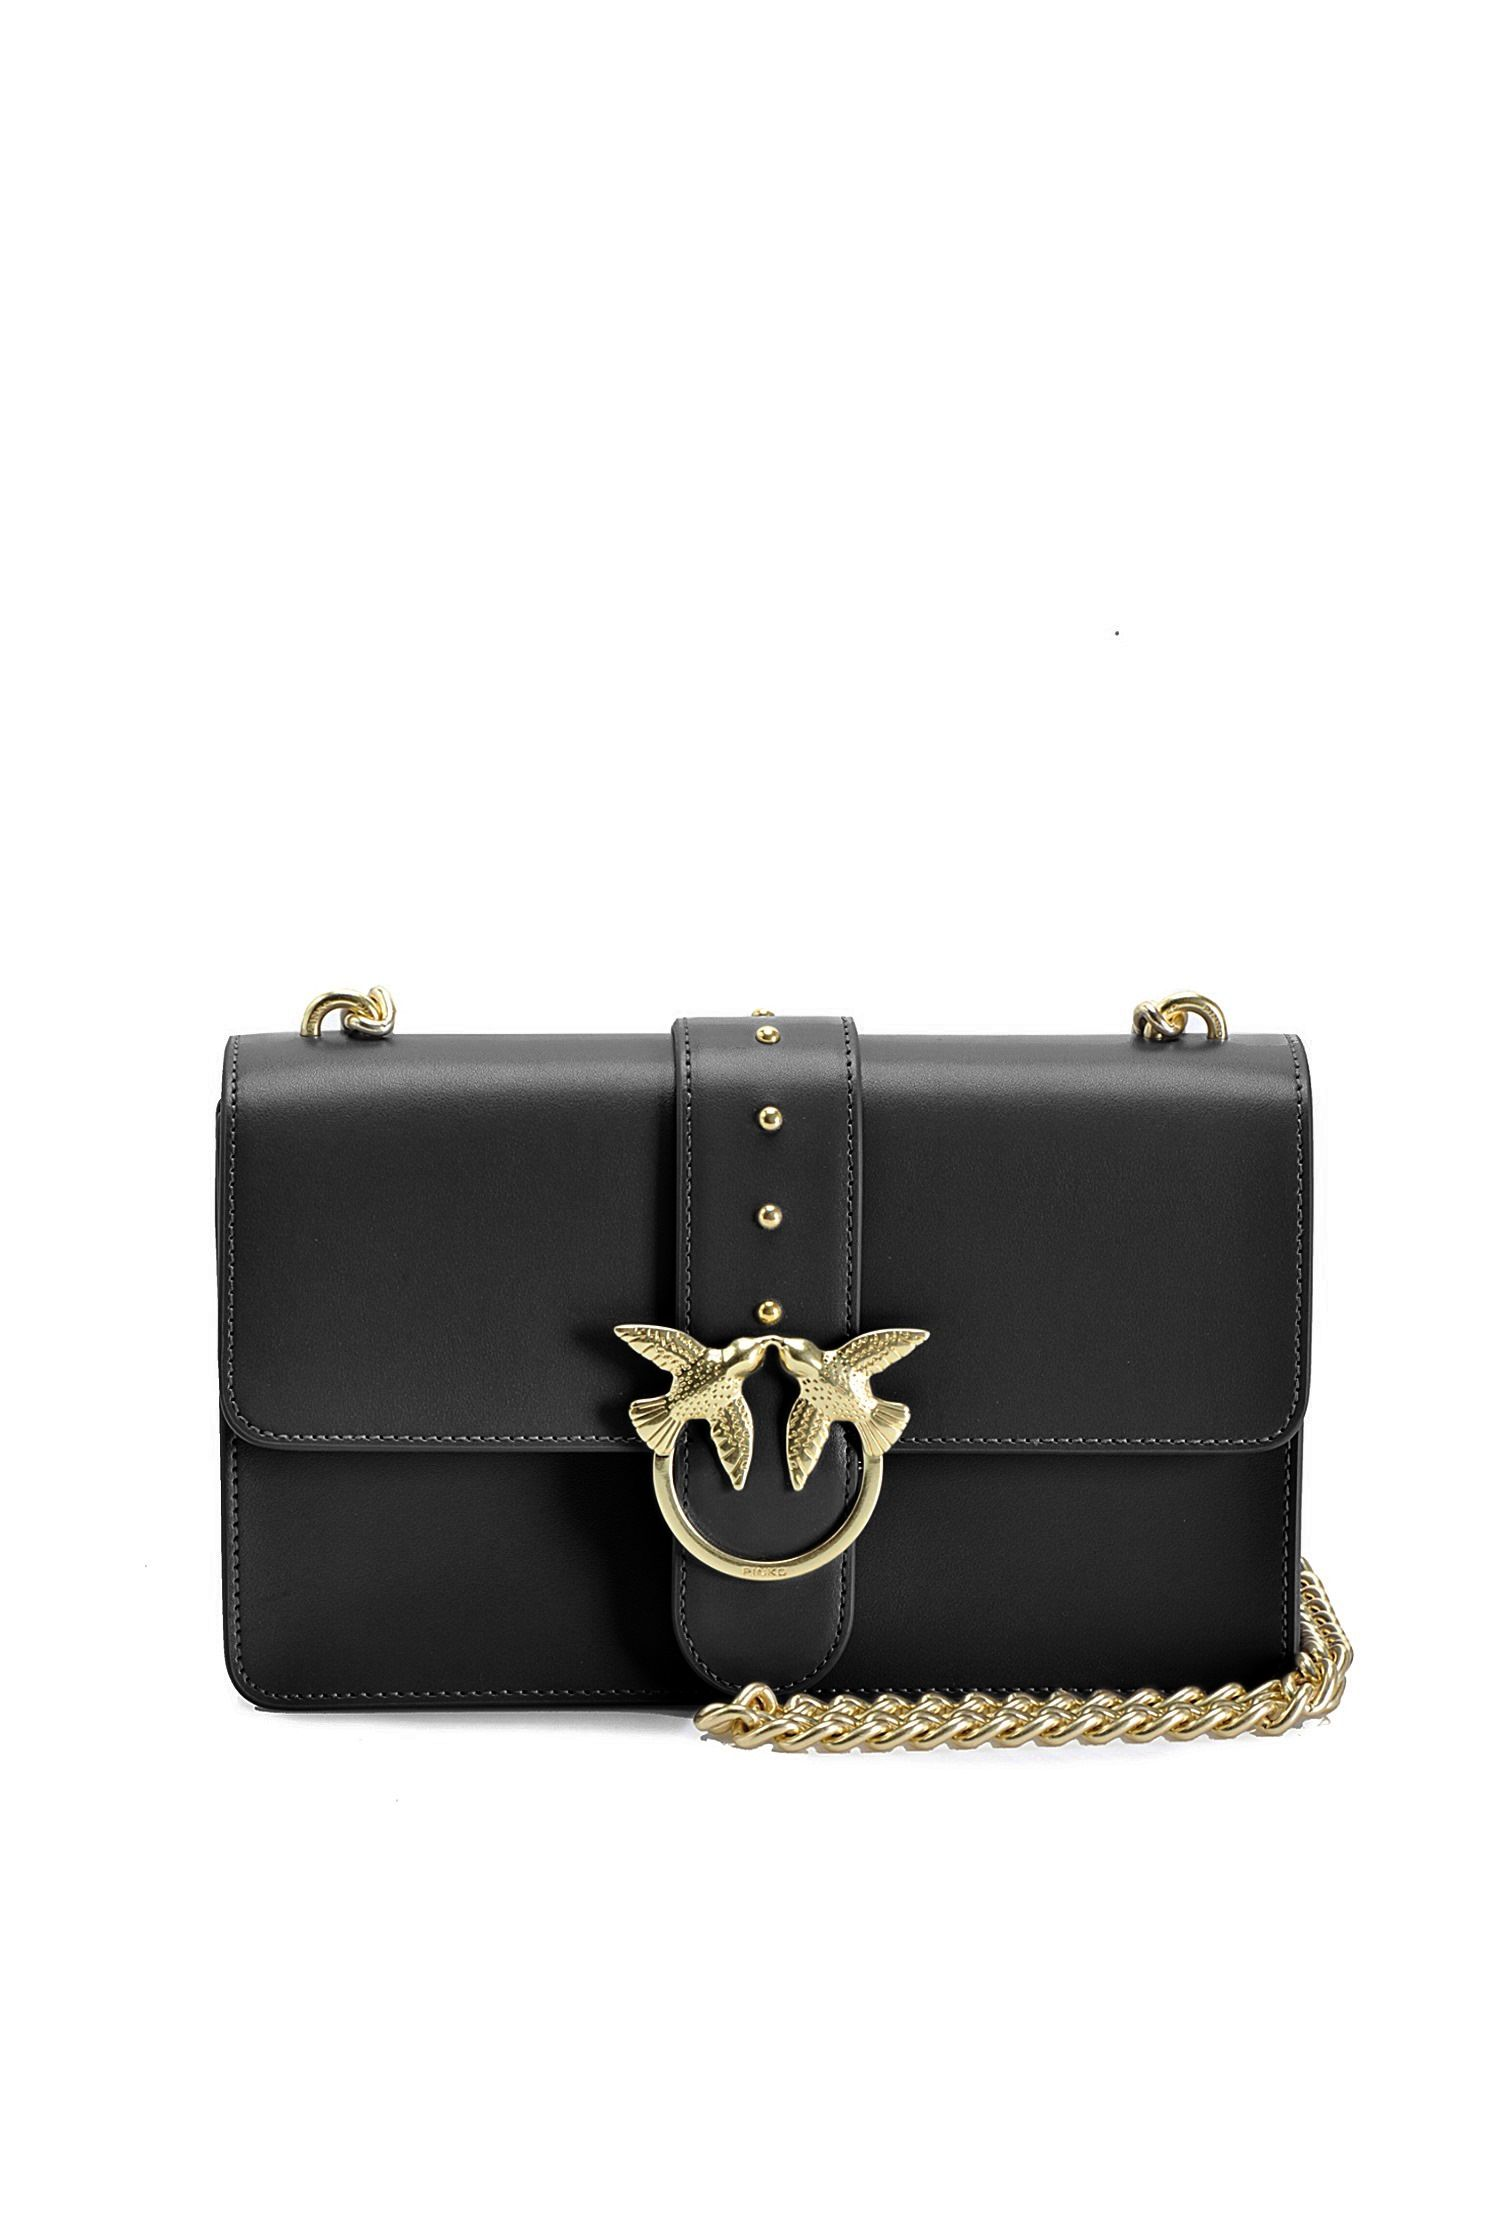 bf98c41d20e Love Bag Simply in leather - PINKO | THE WARDROBE EDIT in 2019 ...